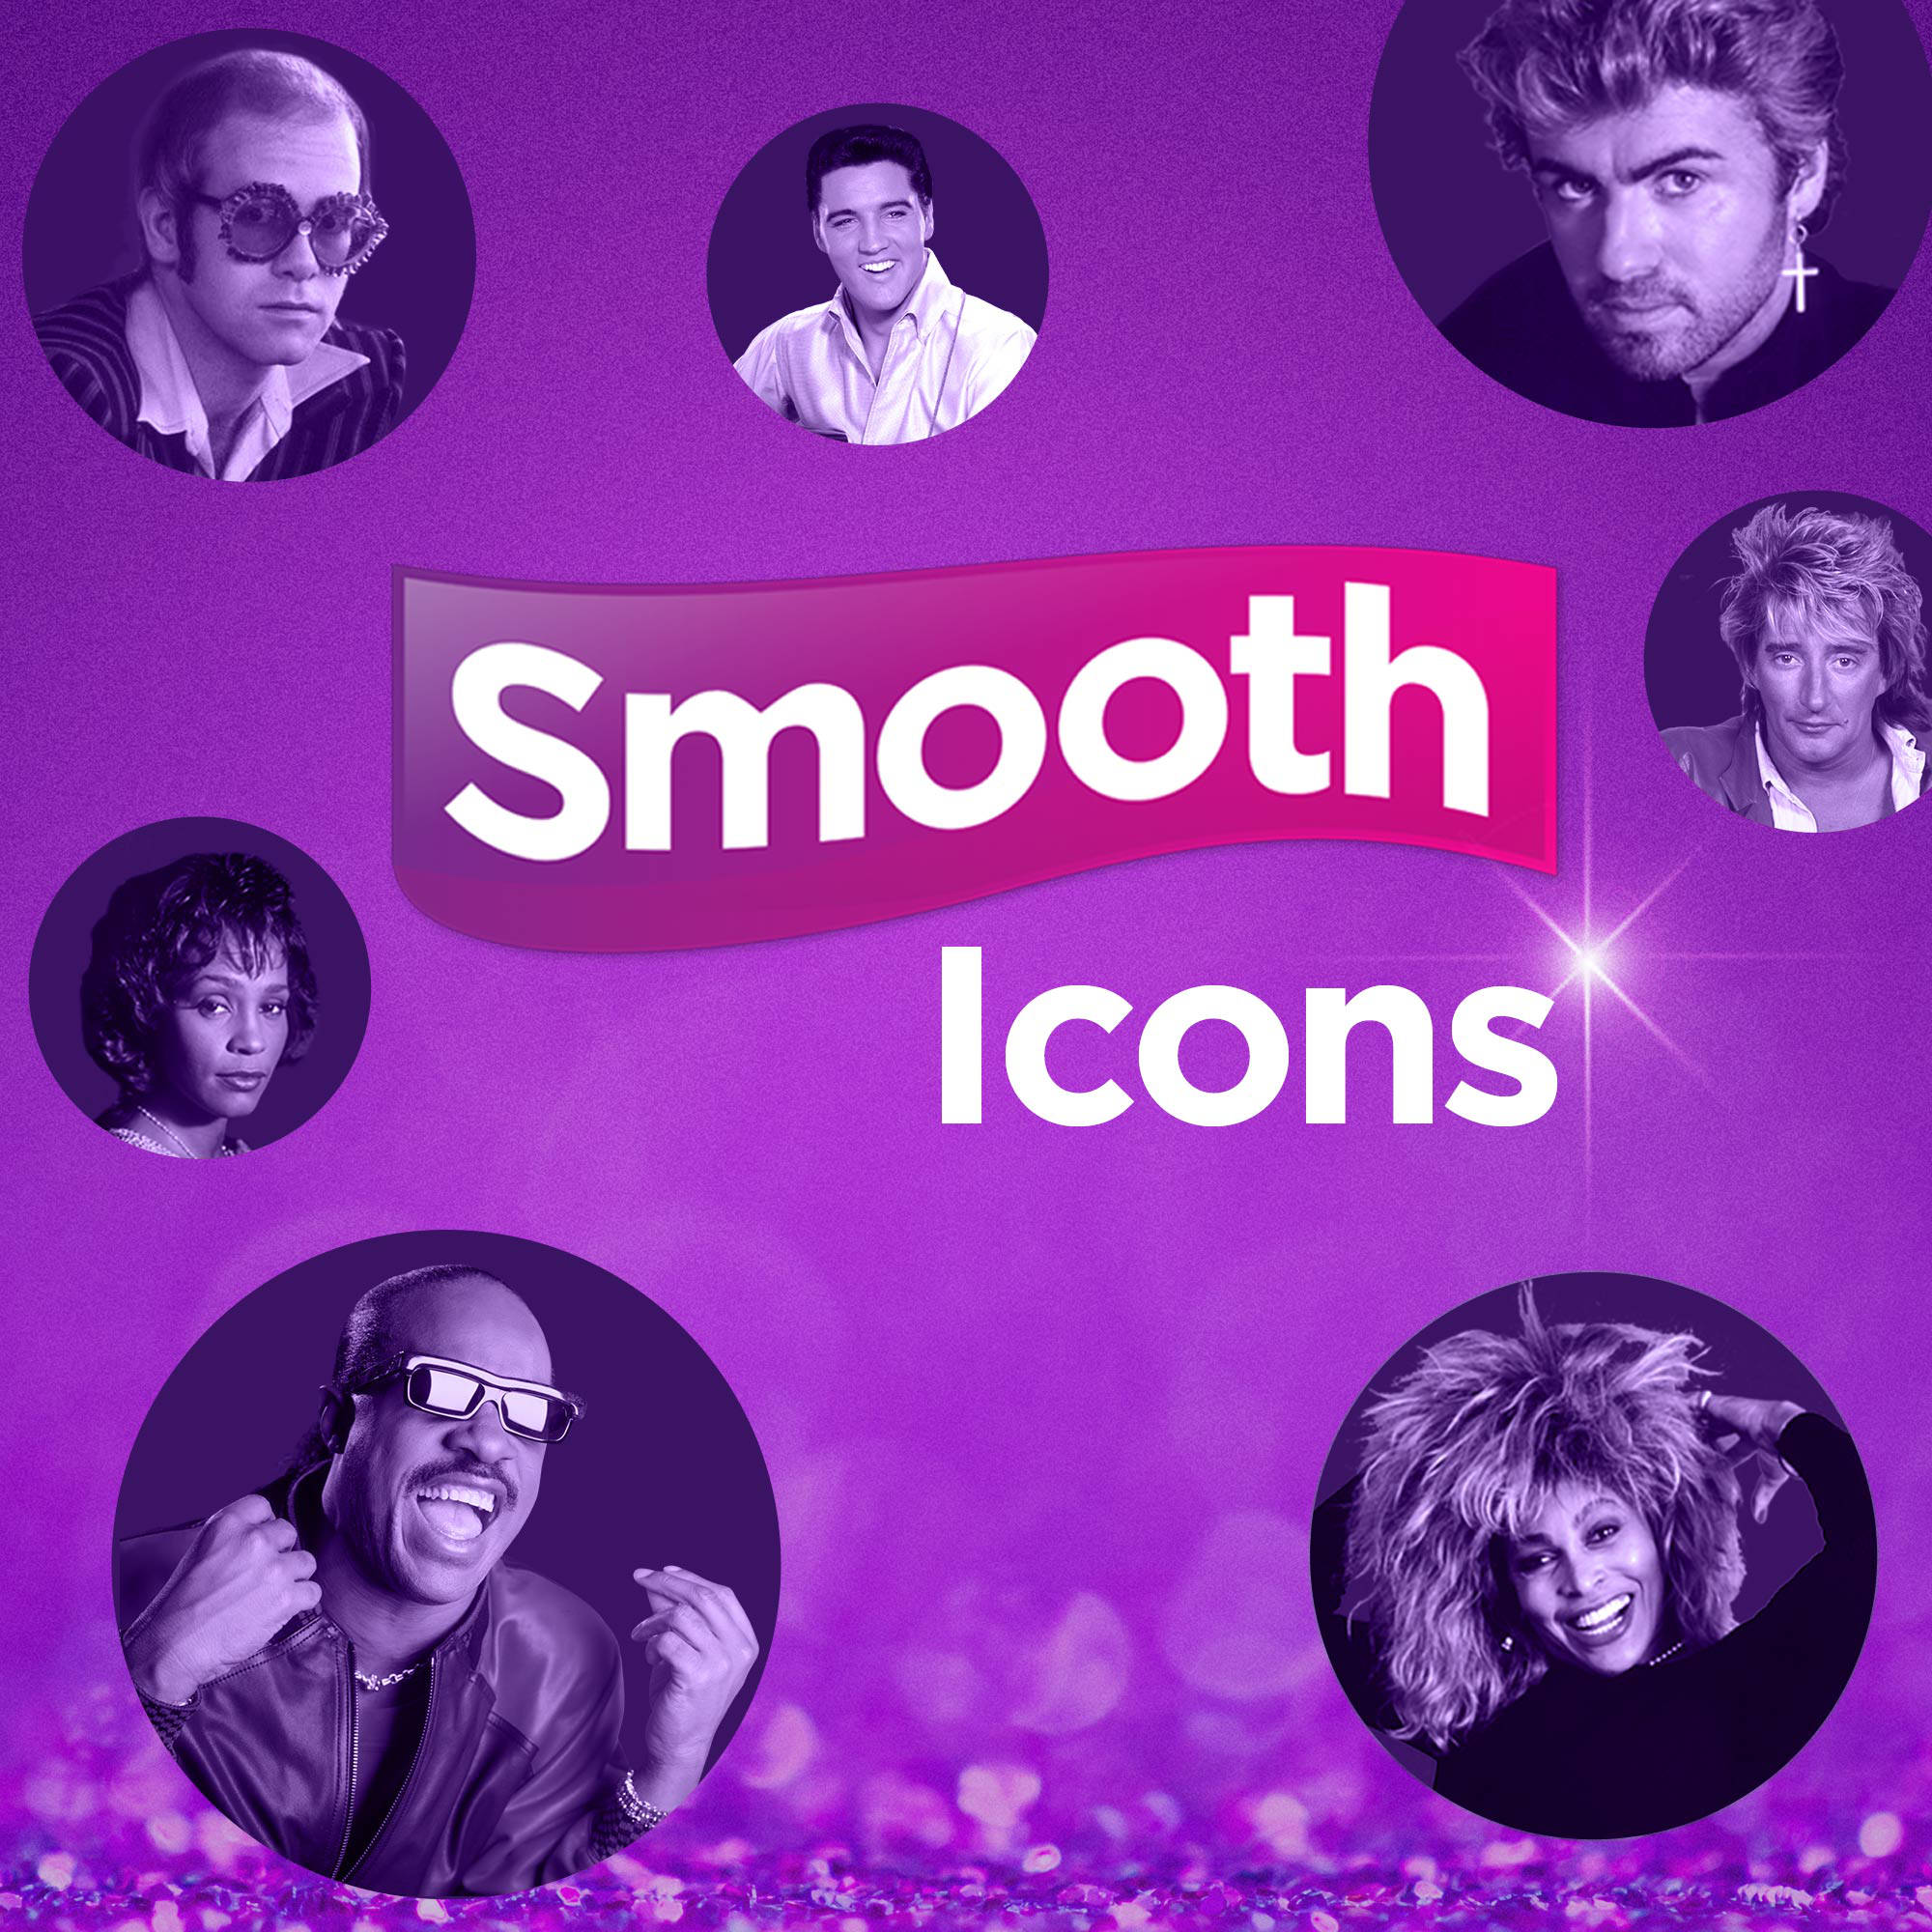 Smooth Icons image